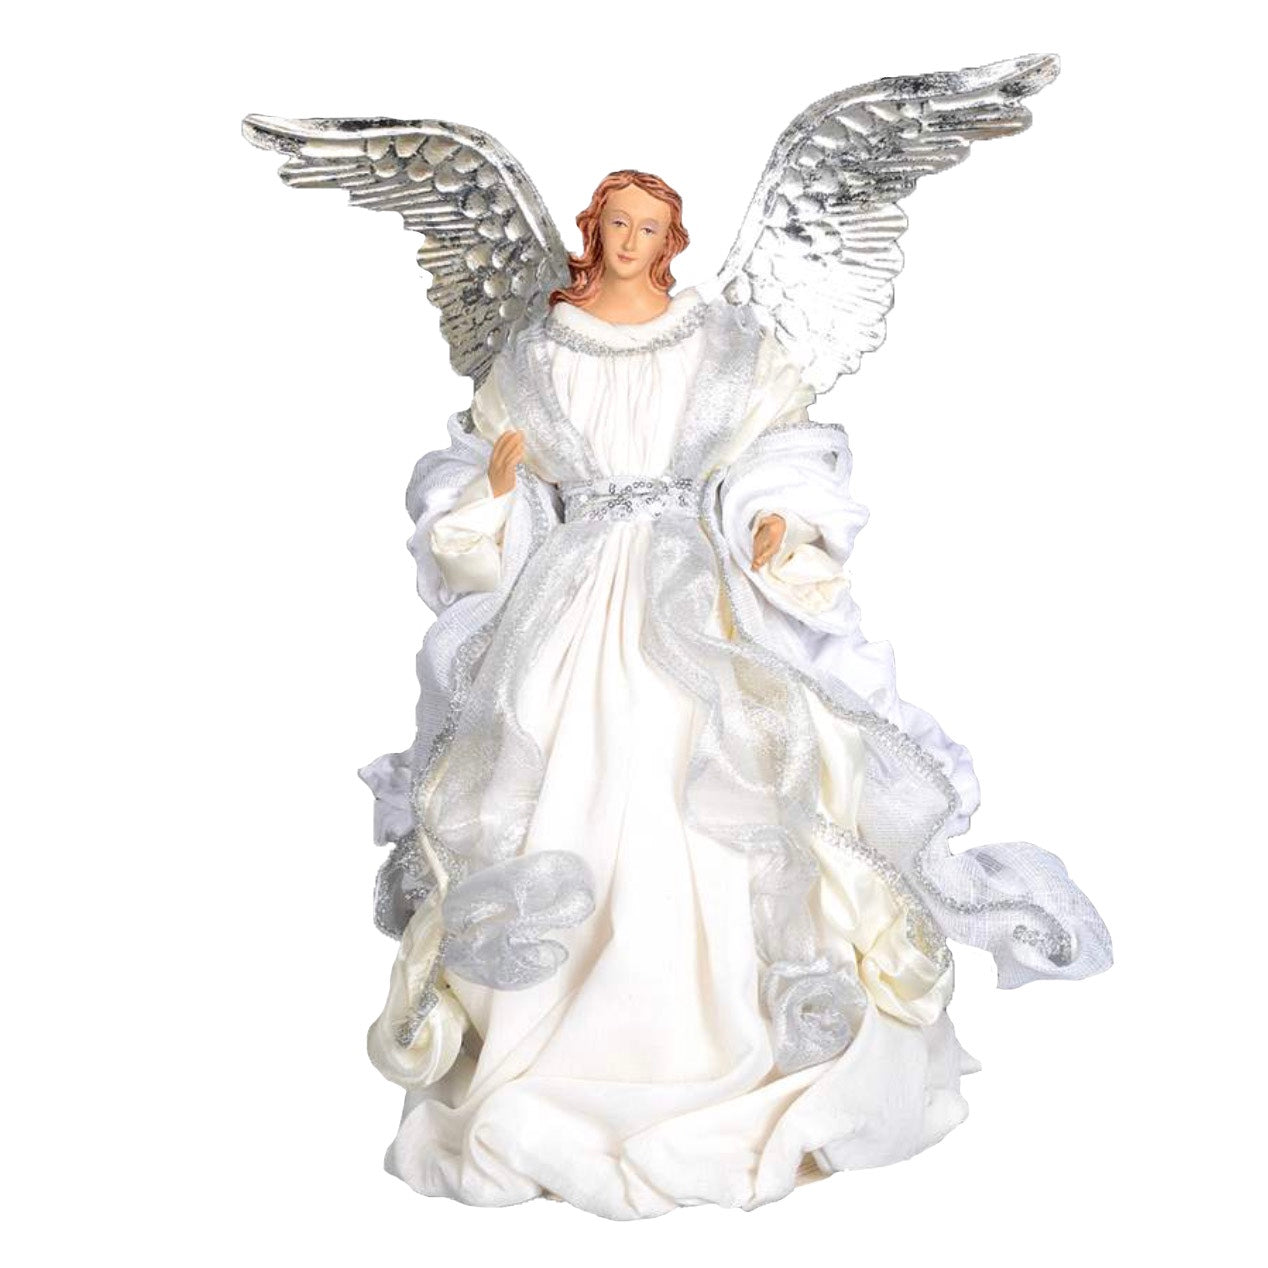 Angel with Cream Robes and Silver Wings